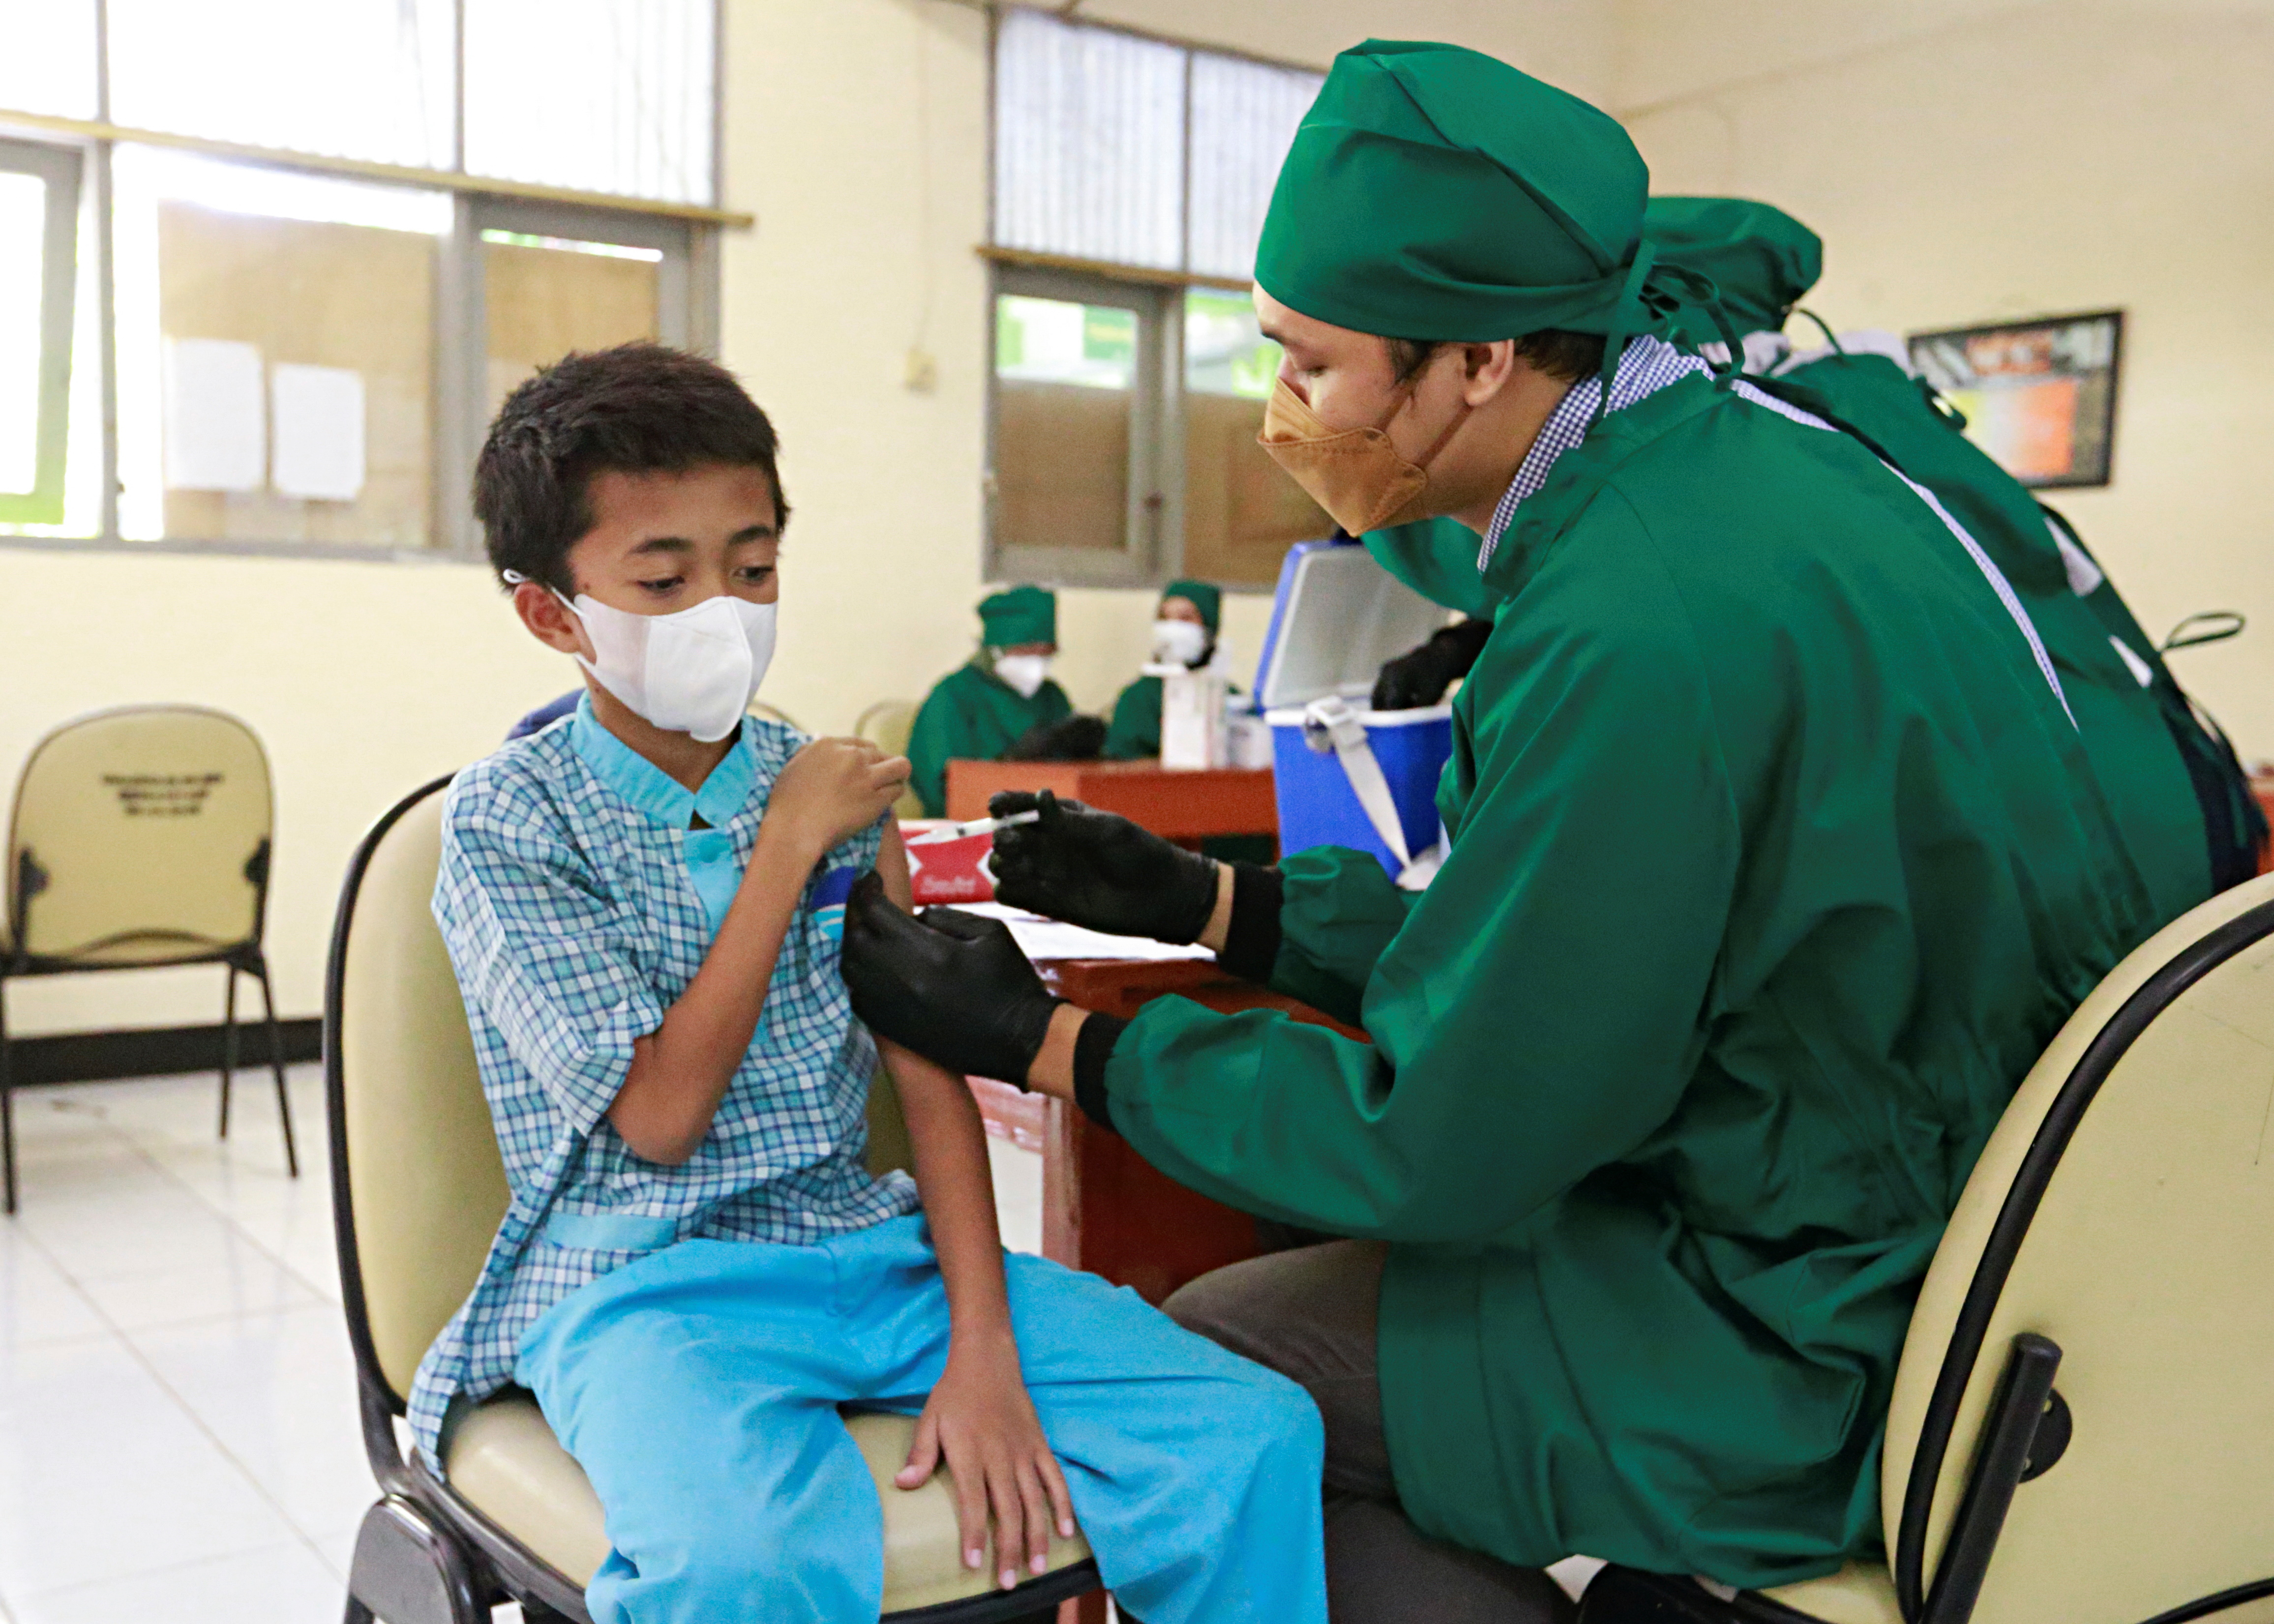 Zaidan Hadi, 12, receives a dose of the vaccine against the coronavirus disease (COVID-19) during a mass vaccination program for students at a school in Jakarta, Indonesia, July 15, 2021. REUTERS/Ajeng Dinar Ulfiana